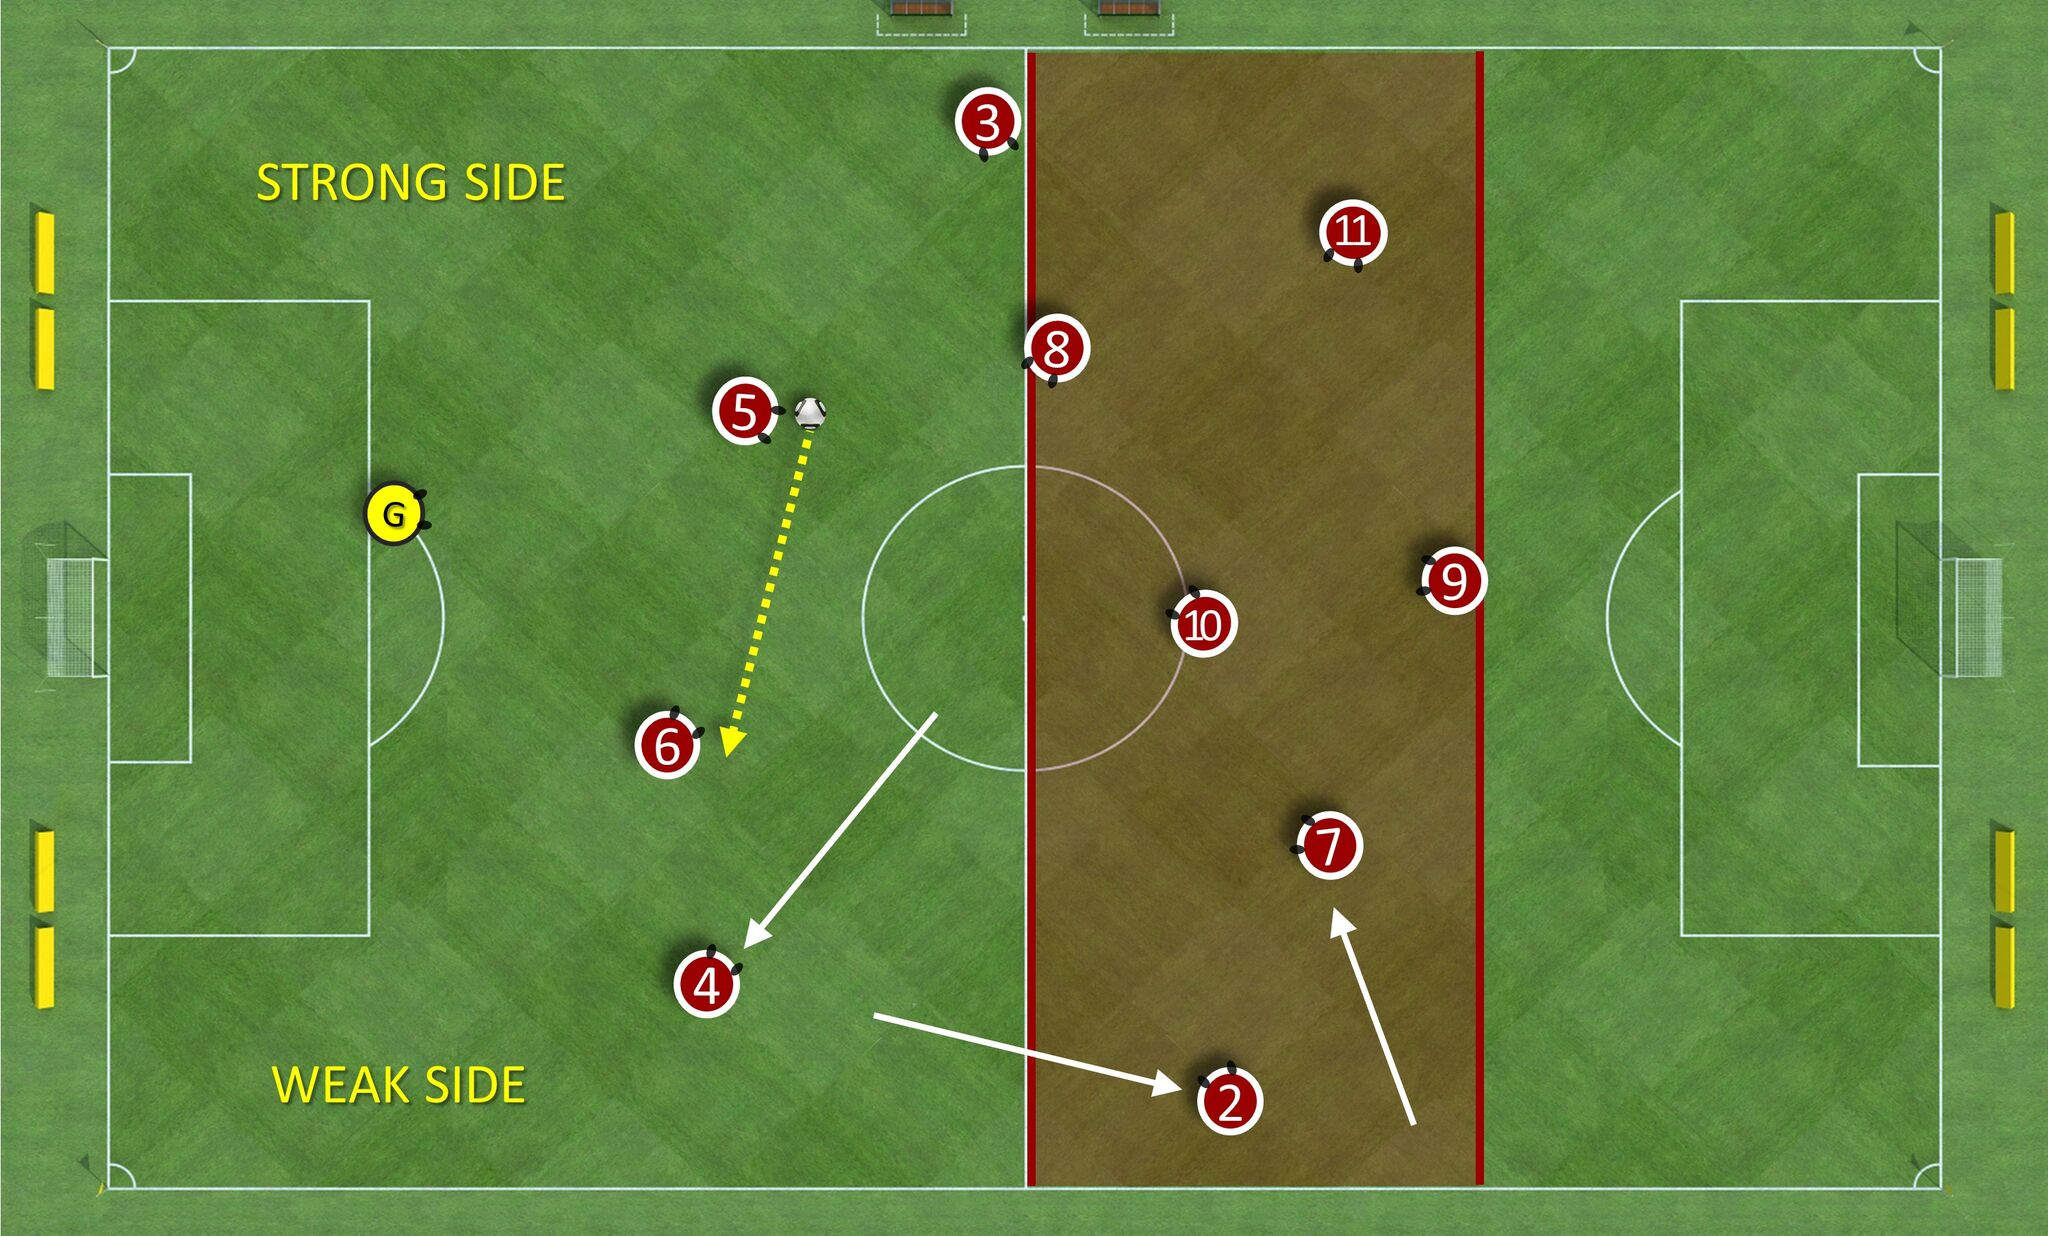 <i>How a holding midfielder pulling out to the side of central defenders adds a player between lines. The ball moves from LCB to RCB. The CDM then pulls out to dictate a forward pass. The LB/ LW rotate to get into position to take advantage of this situation. This rotation adds to the numbers ahead of the ball between the lines and gets a playmaker on the ball to find the key pass. </i>